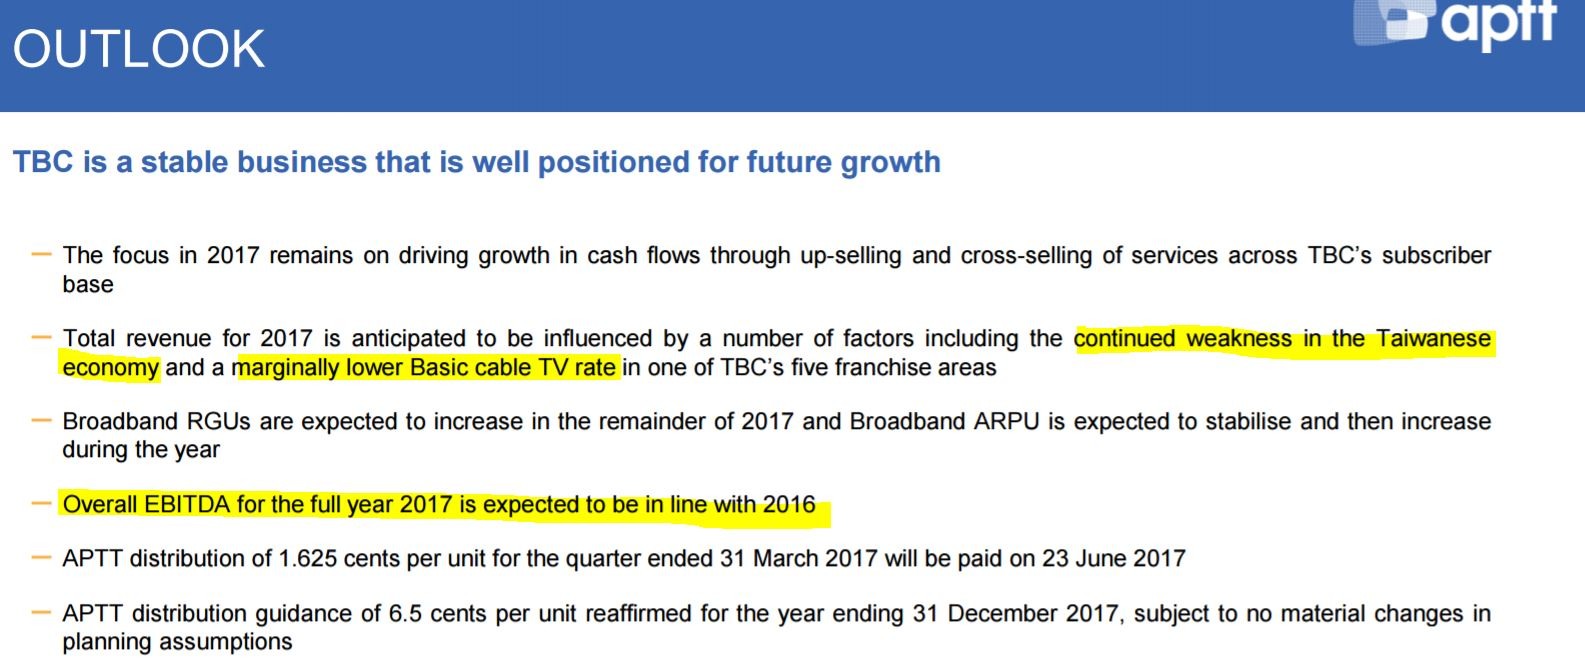 asian pay tv trust outlook